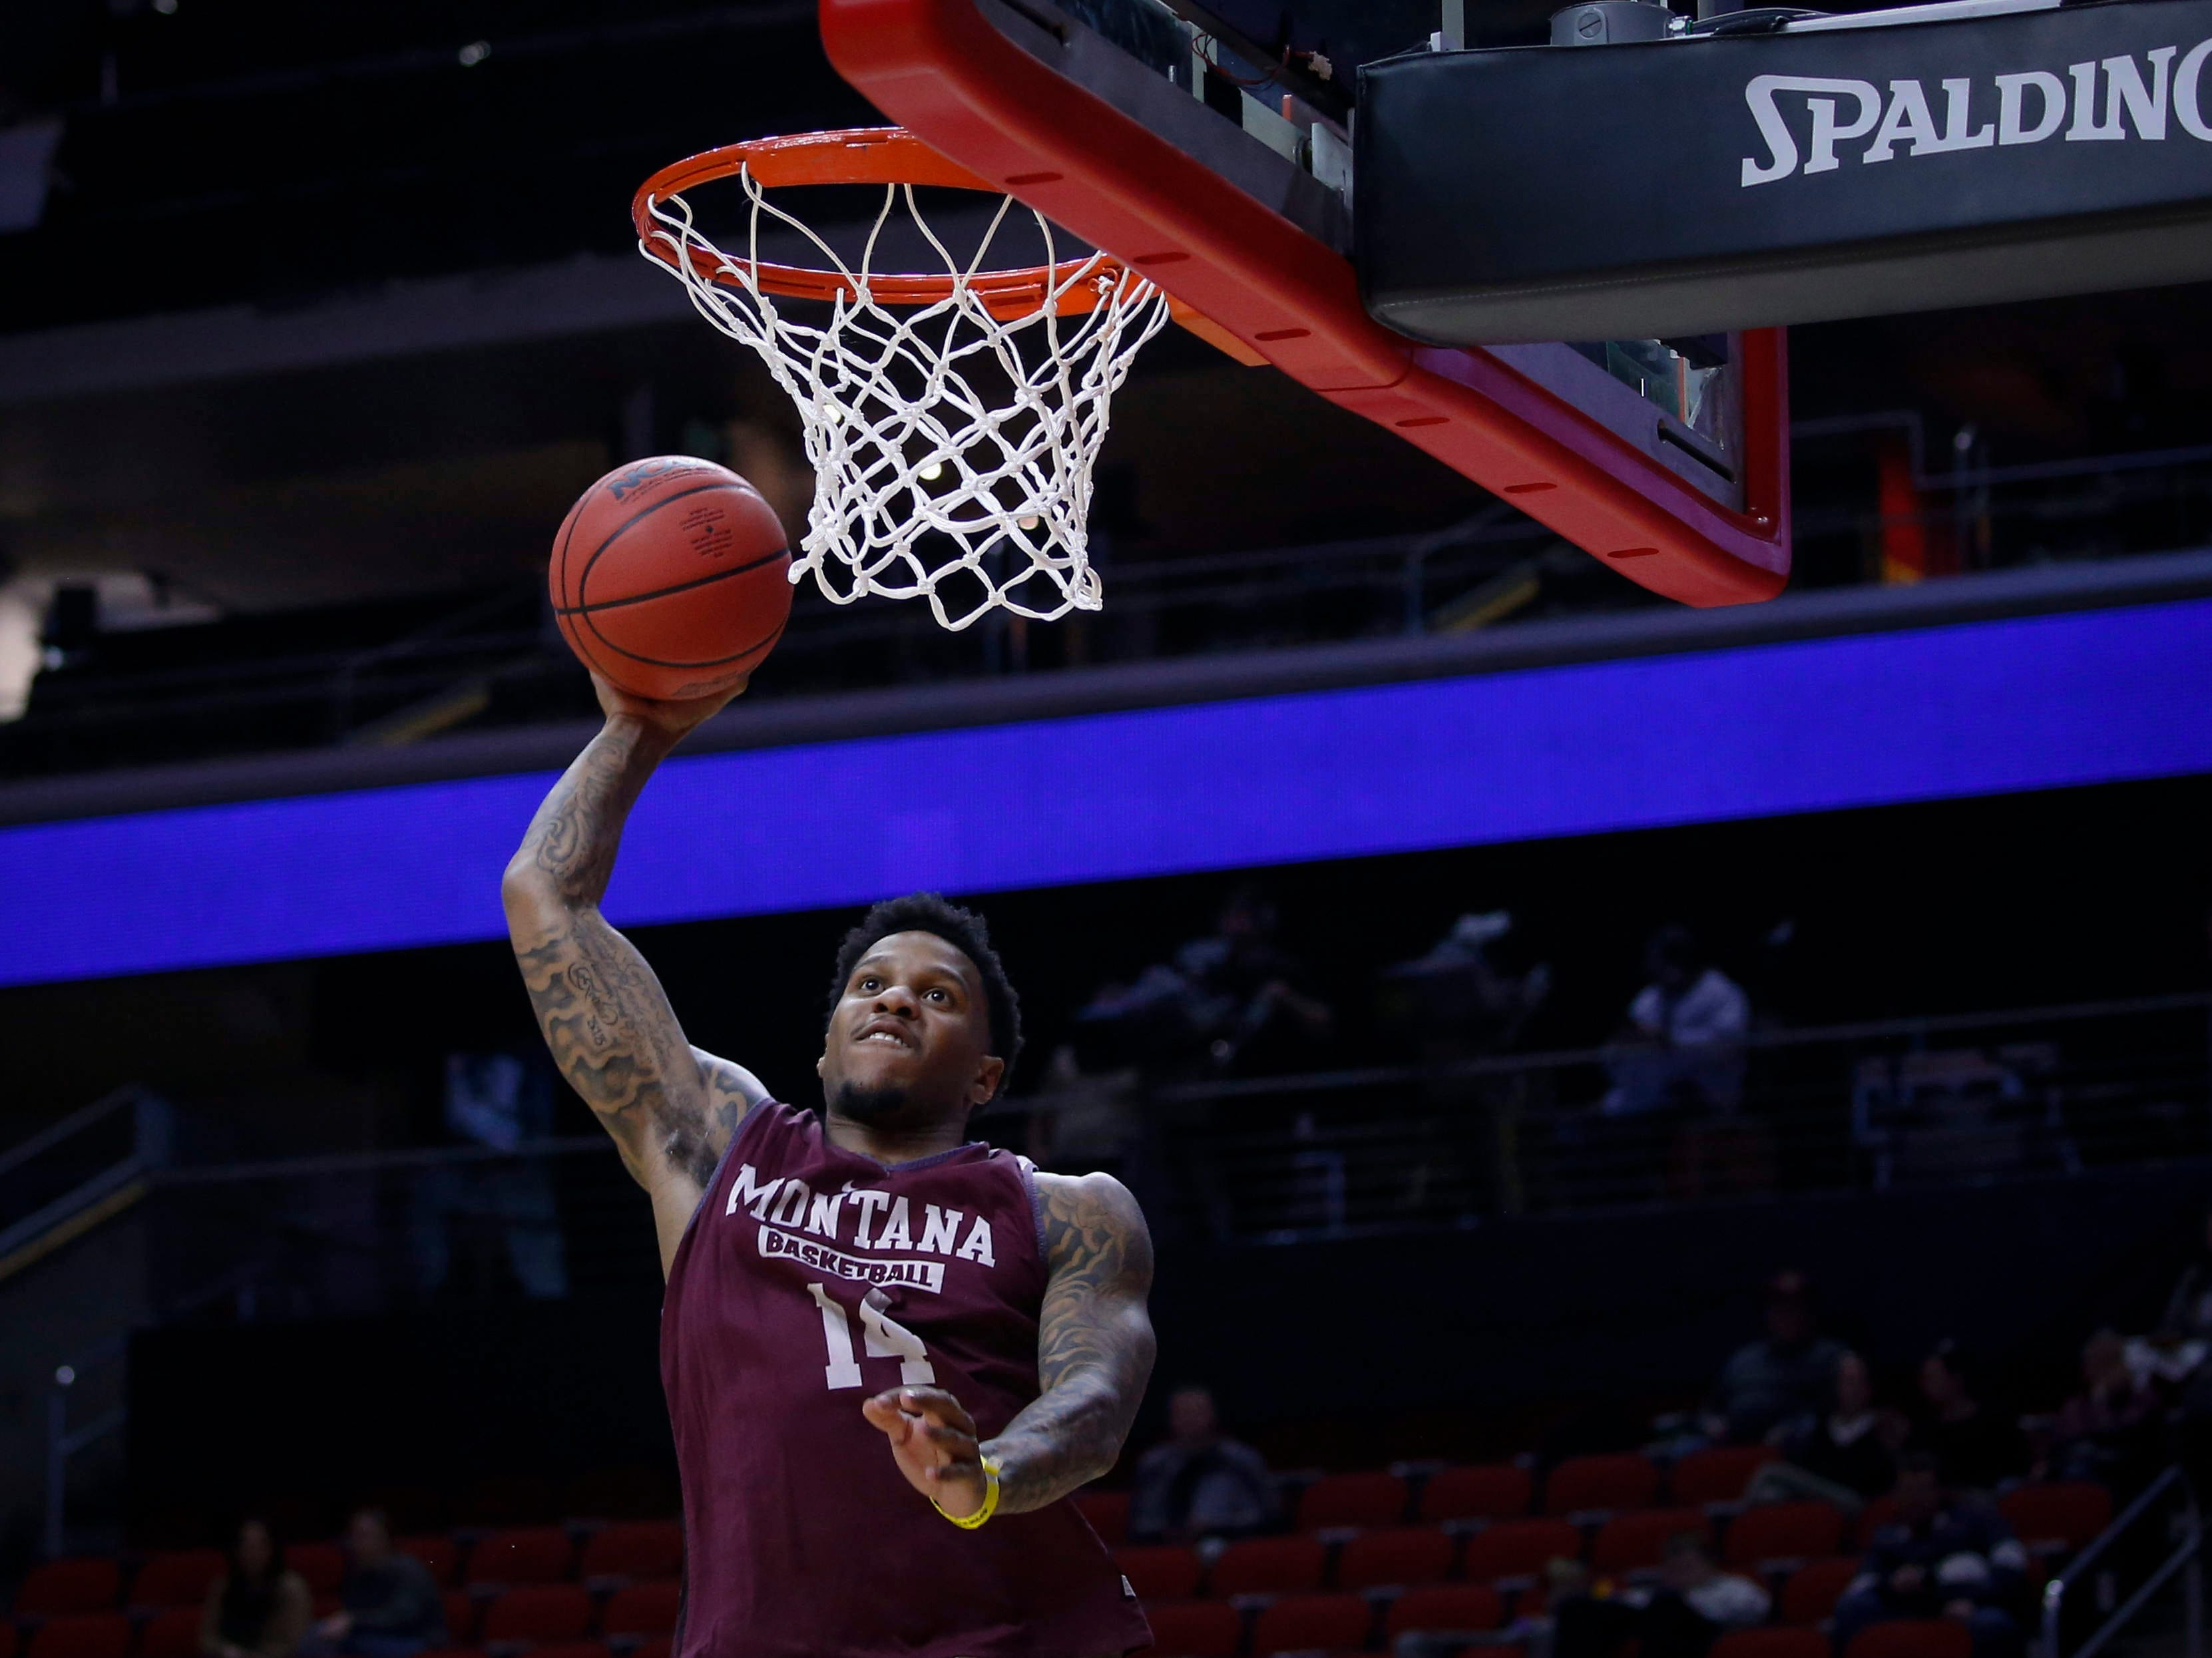 Montana senior Ahmaad Rorie dunks the ball during open practice on Wednesday, March 20, 2019, at Wells Fargo Arena in Des Moines, Iowa.